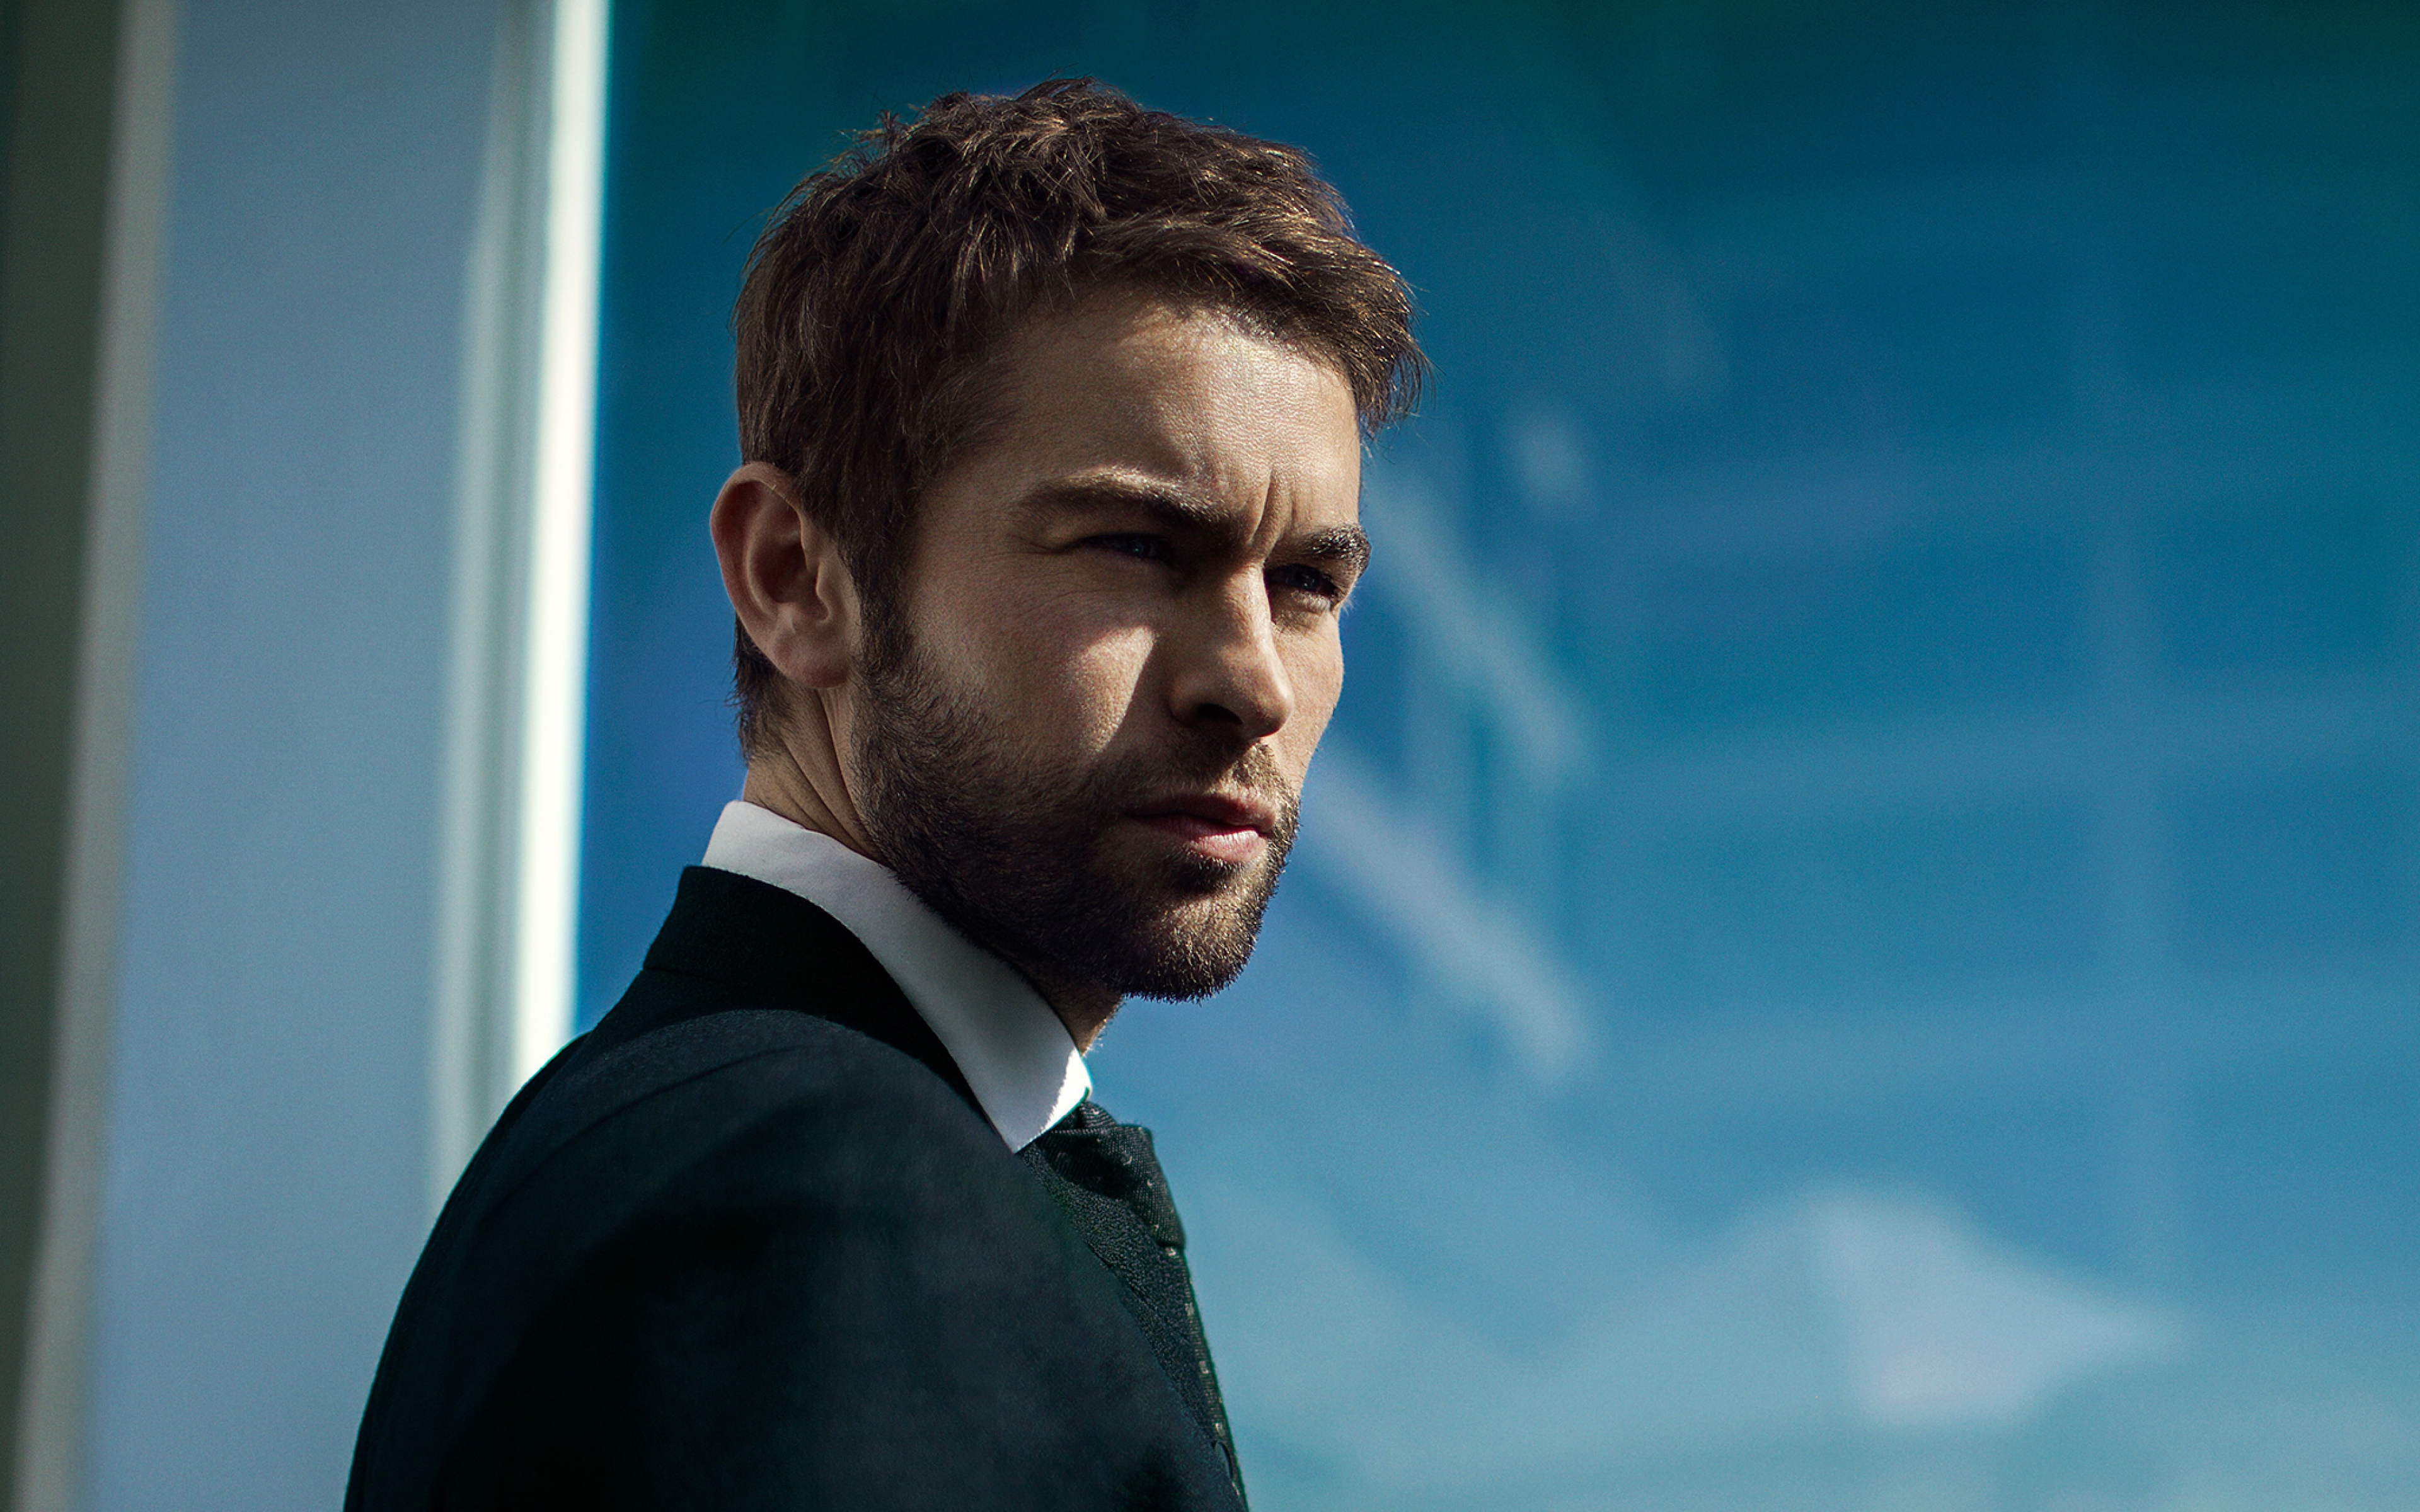 Chace Crawford - Casual - Just About TV